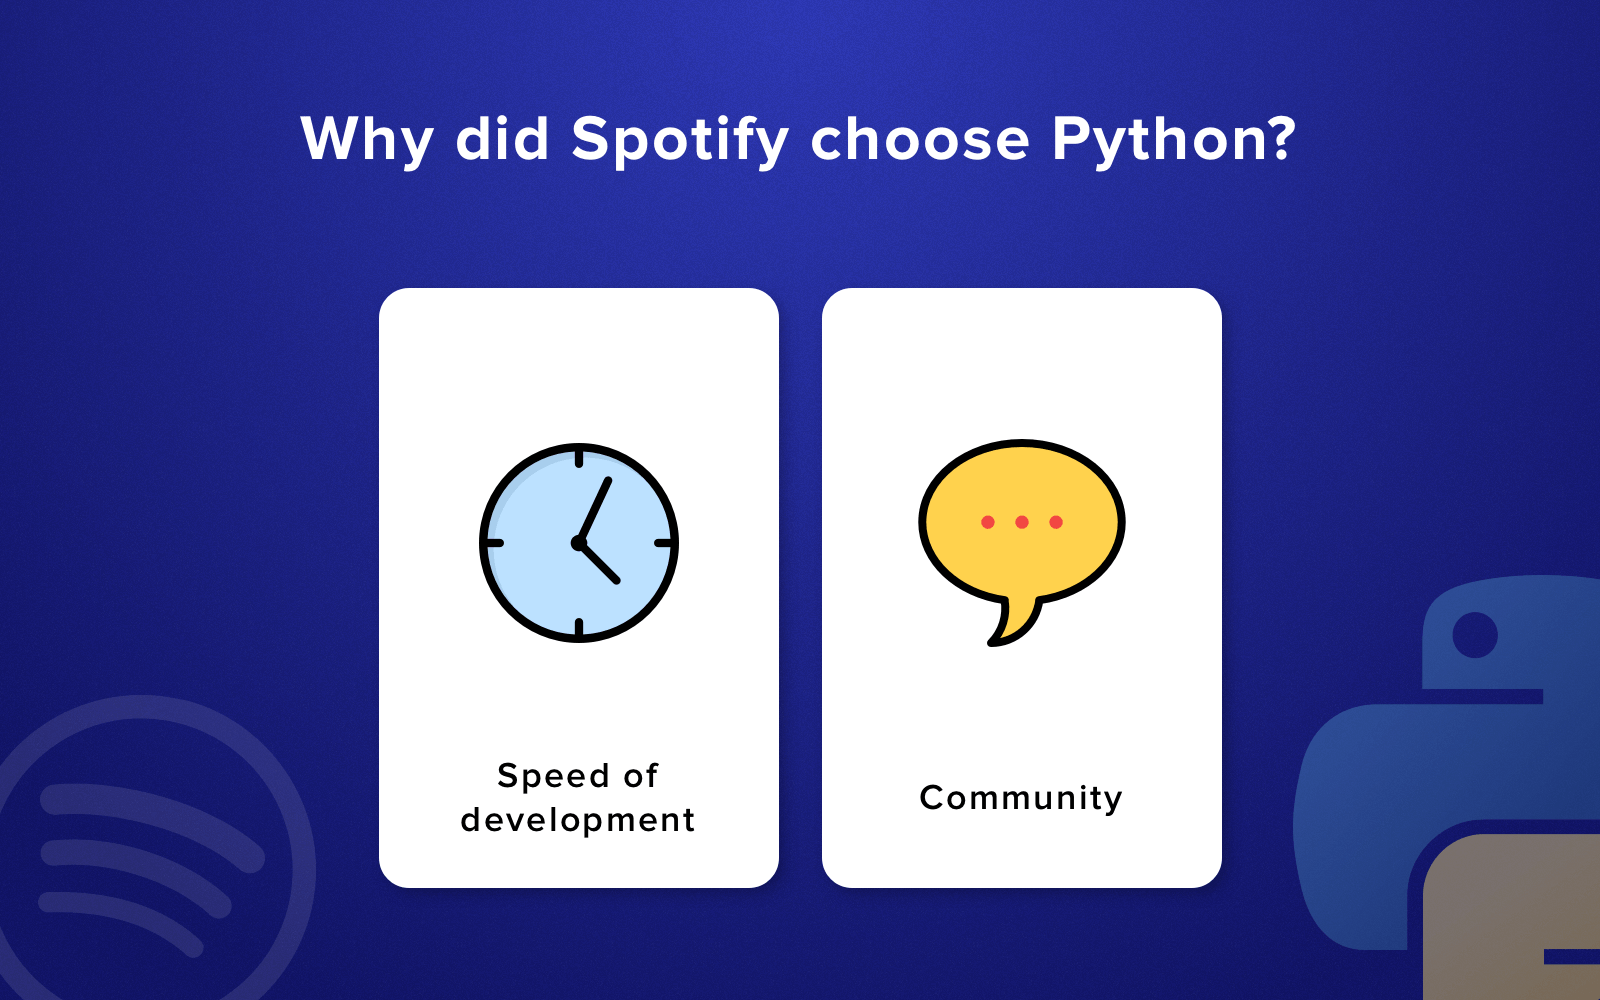 Discover 5 Leading Companies That Use Python and Learn Does It Fit